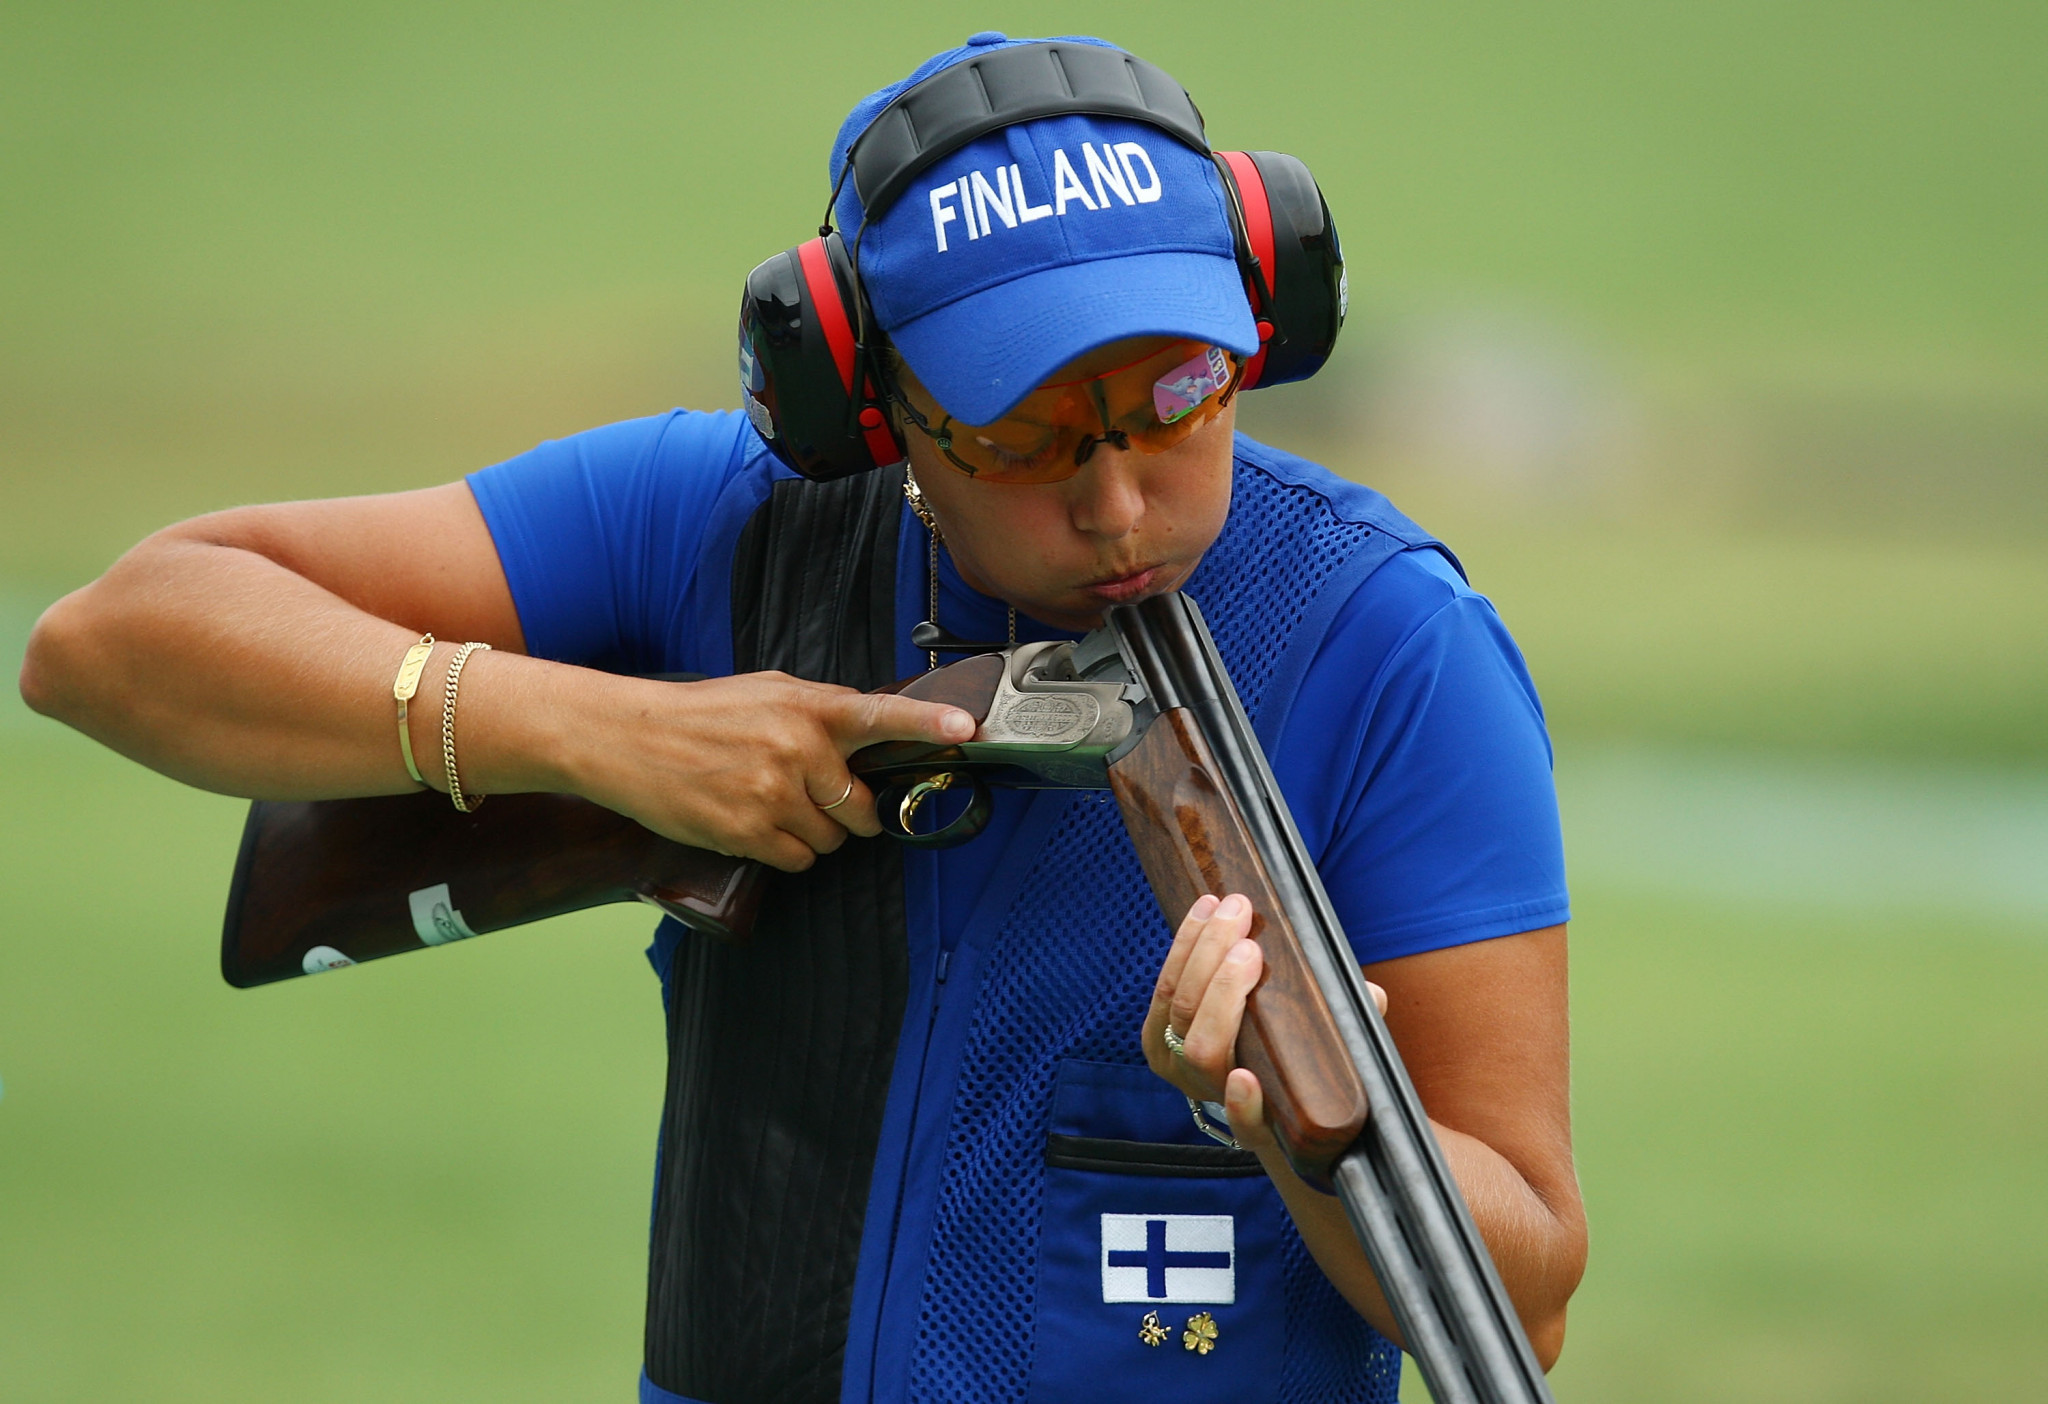 Finland's world record holder Satu Makela-Nummela only qualified in 27th place for tomorrow's Women's Trap final in the ISSF Shotgun World Cup in Al Ain ©Getty Images